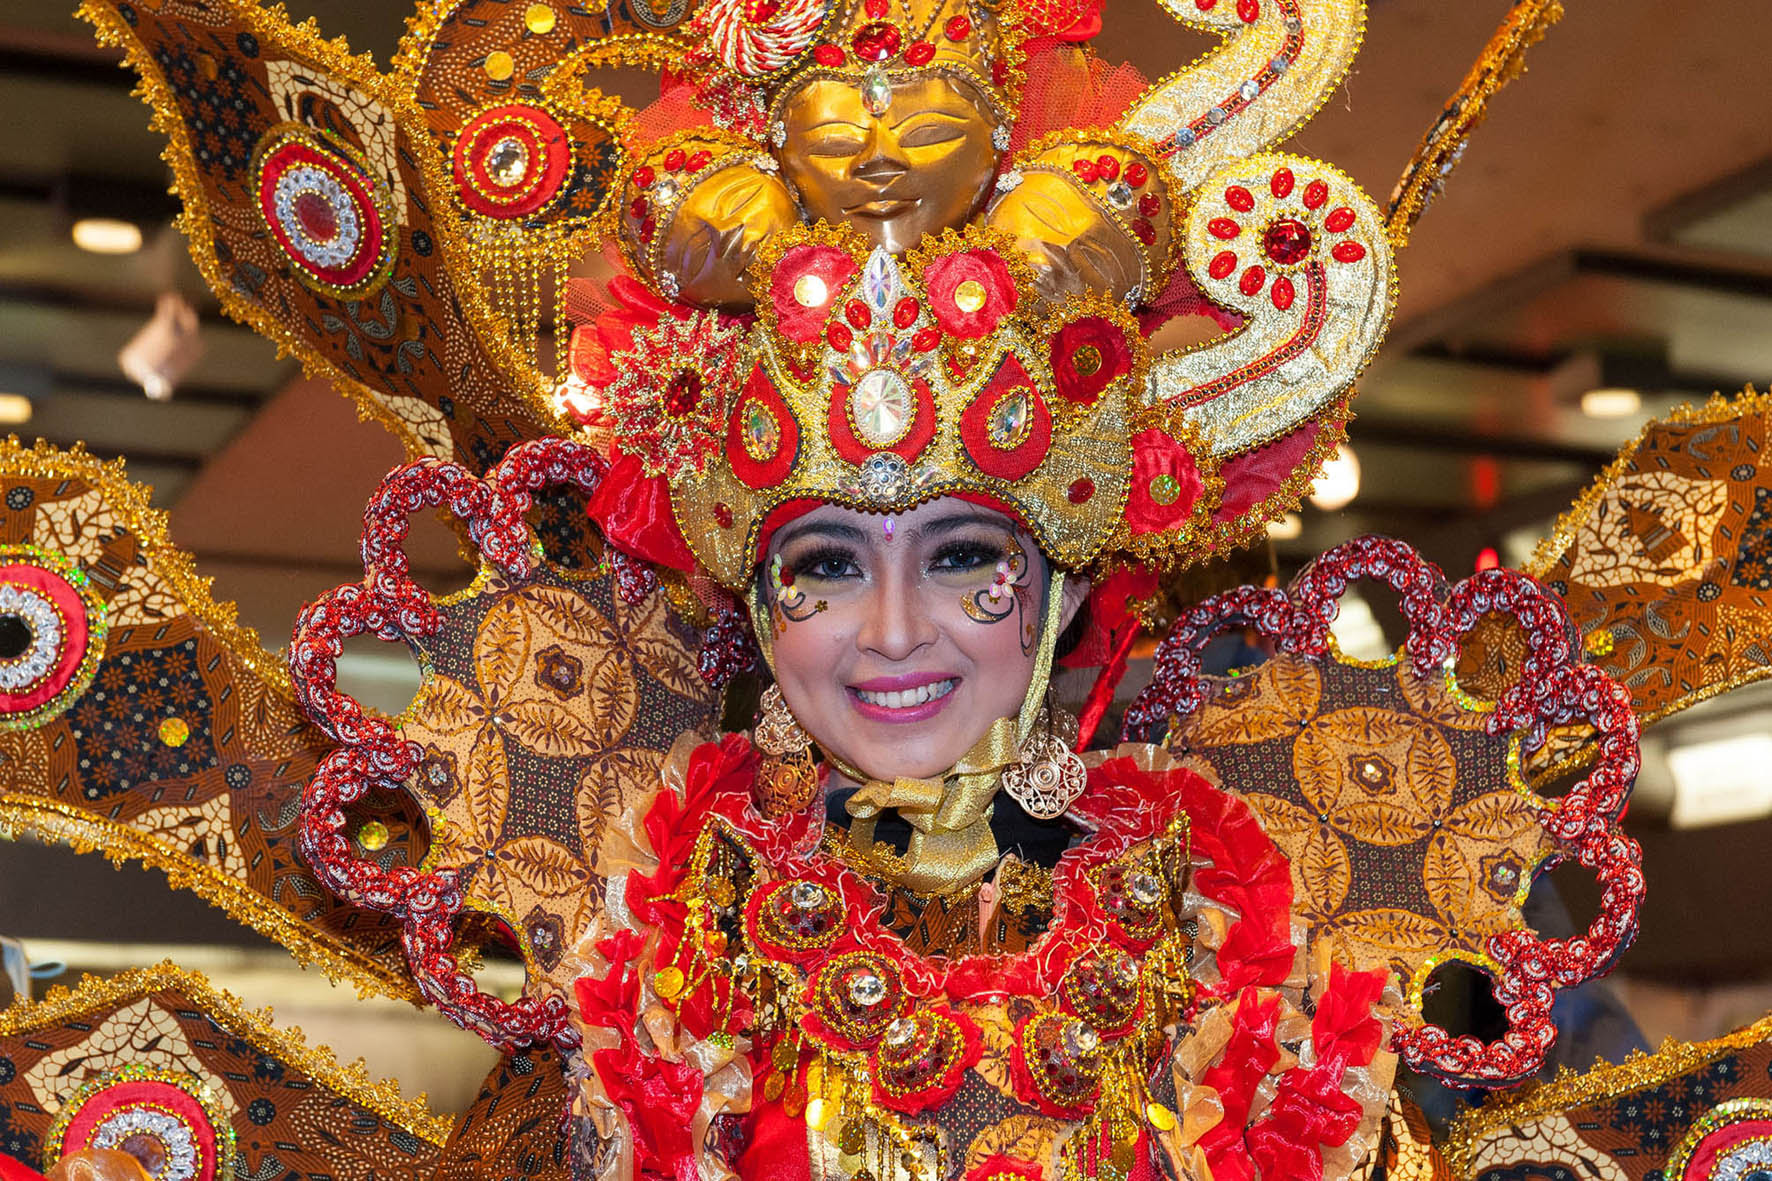 Bali Tourism Board  Bali News  PRESS RELEASE: ITB Partner Country Indonesia Celebrates Opening